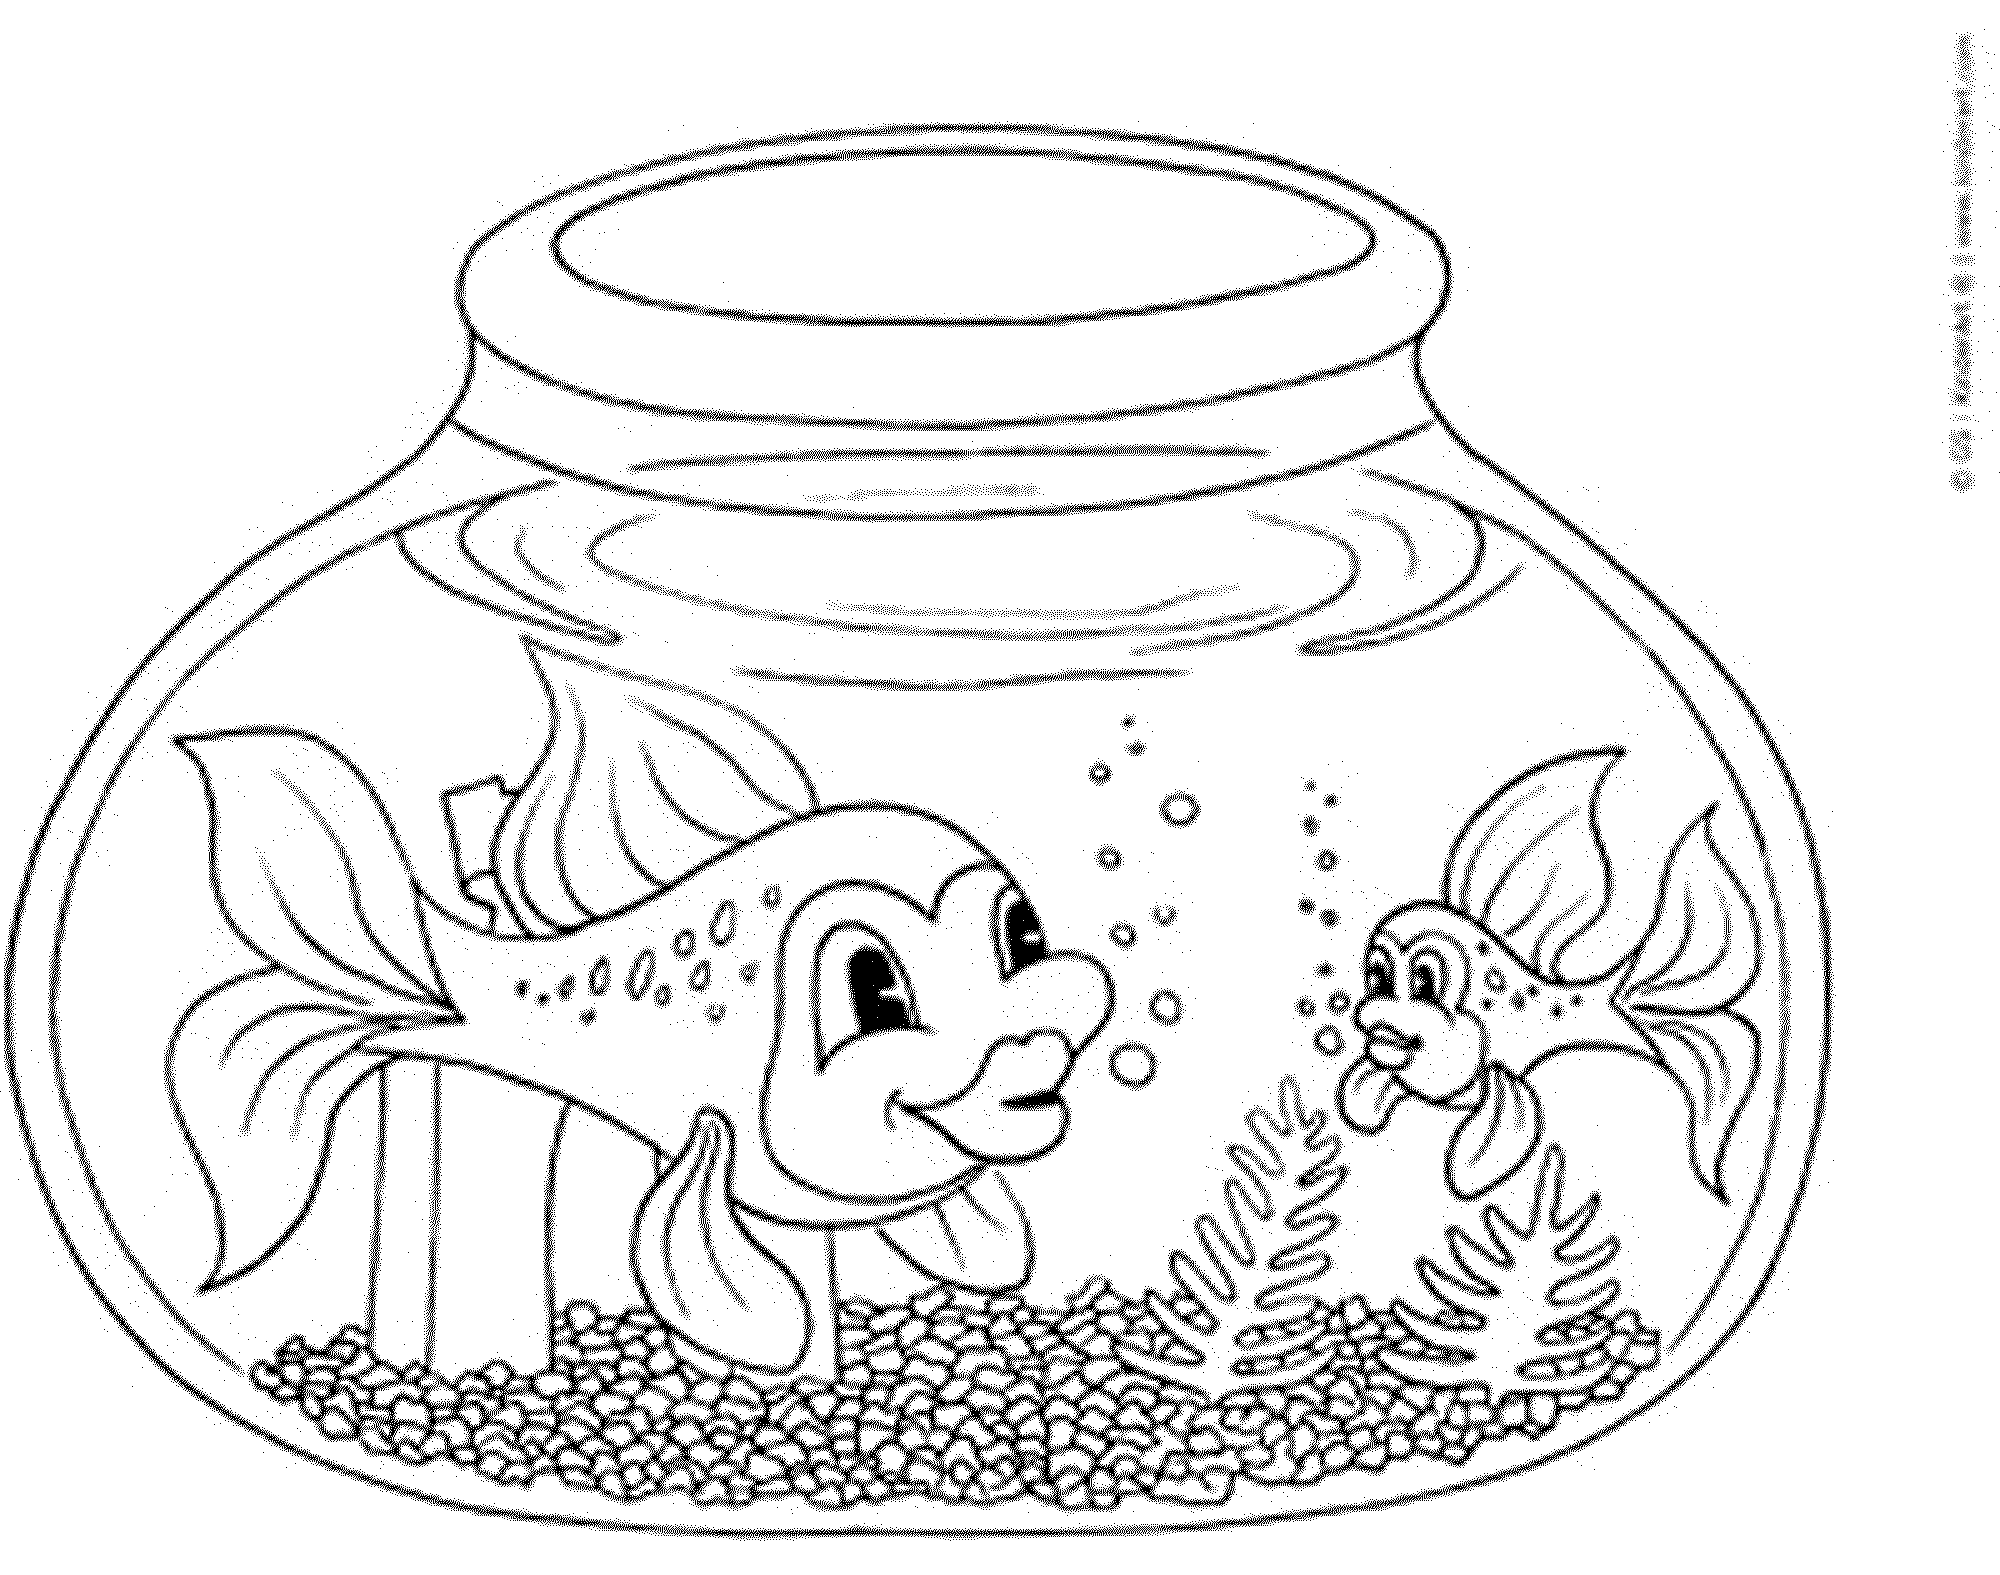 Fish bowl coloring page printable coloring home for Printable fish coloring pages